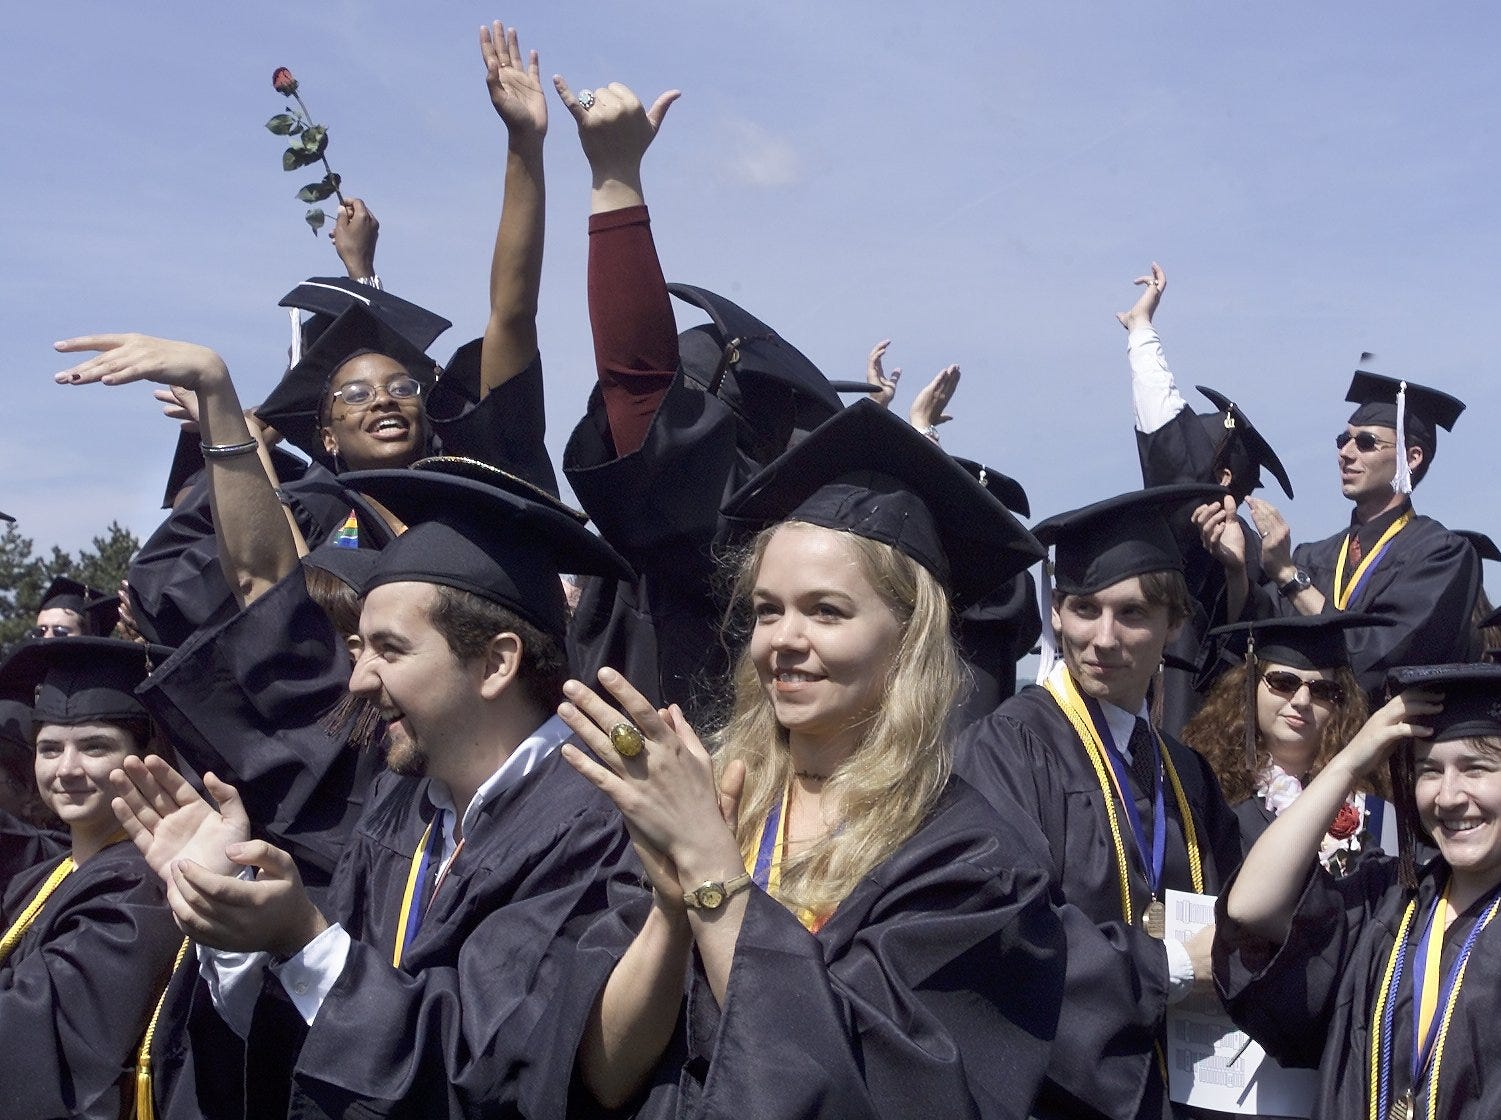 2001: Ithaca College graduates celebrate at the end of commencement ceremonies Saturday at Butterfield Stadium. Under clear blue skies, 1,318 students became graduates in the school's 106th commencement.